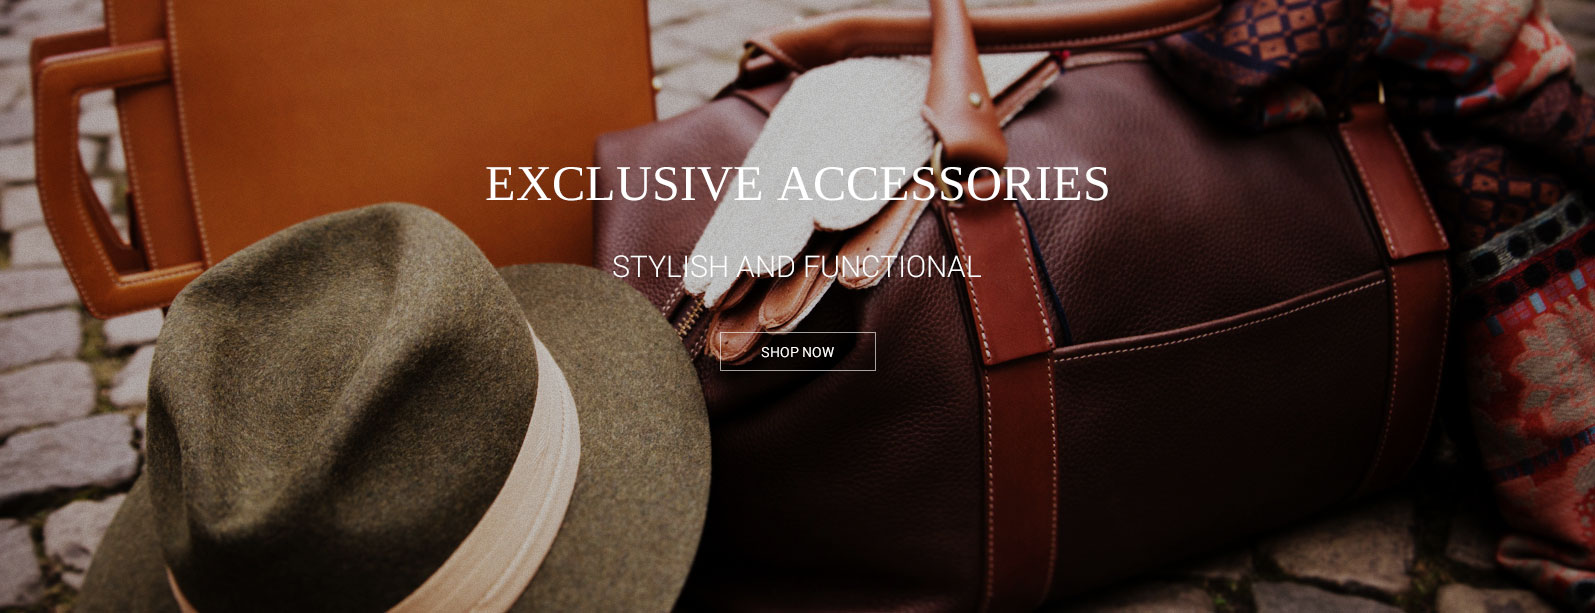 Banner to Accessories page